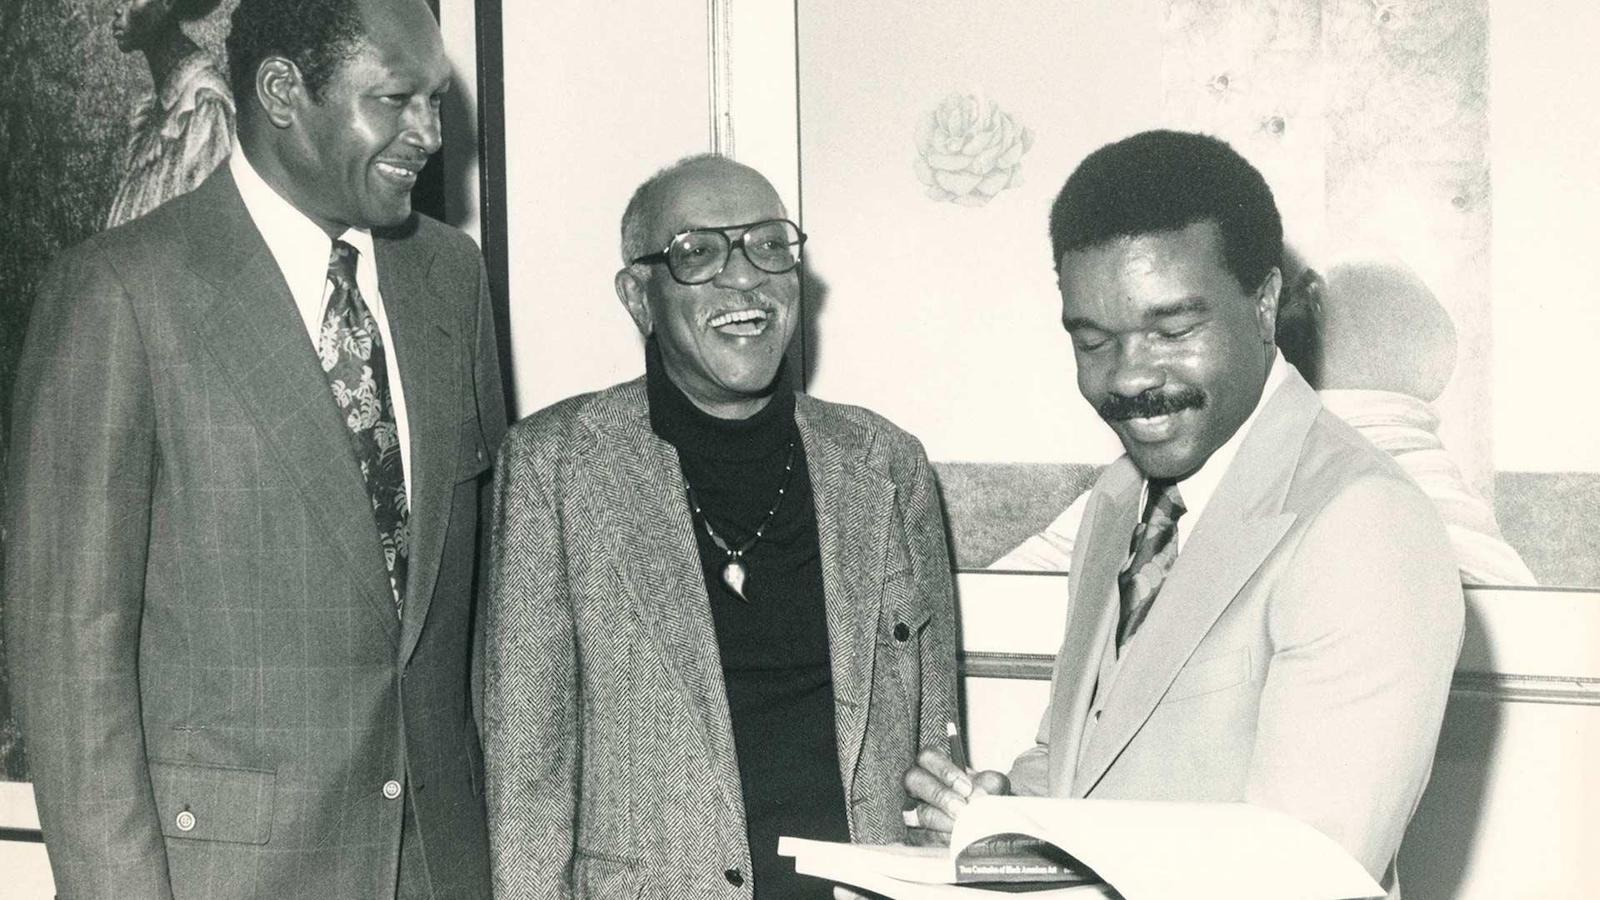 Los Angeles Mayor Tom Bradley (left), artist Charles White and David Driskell